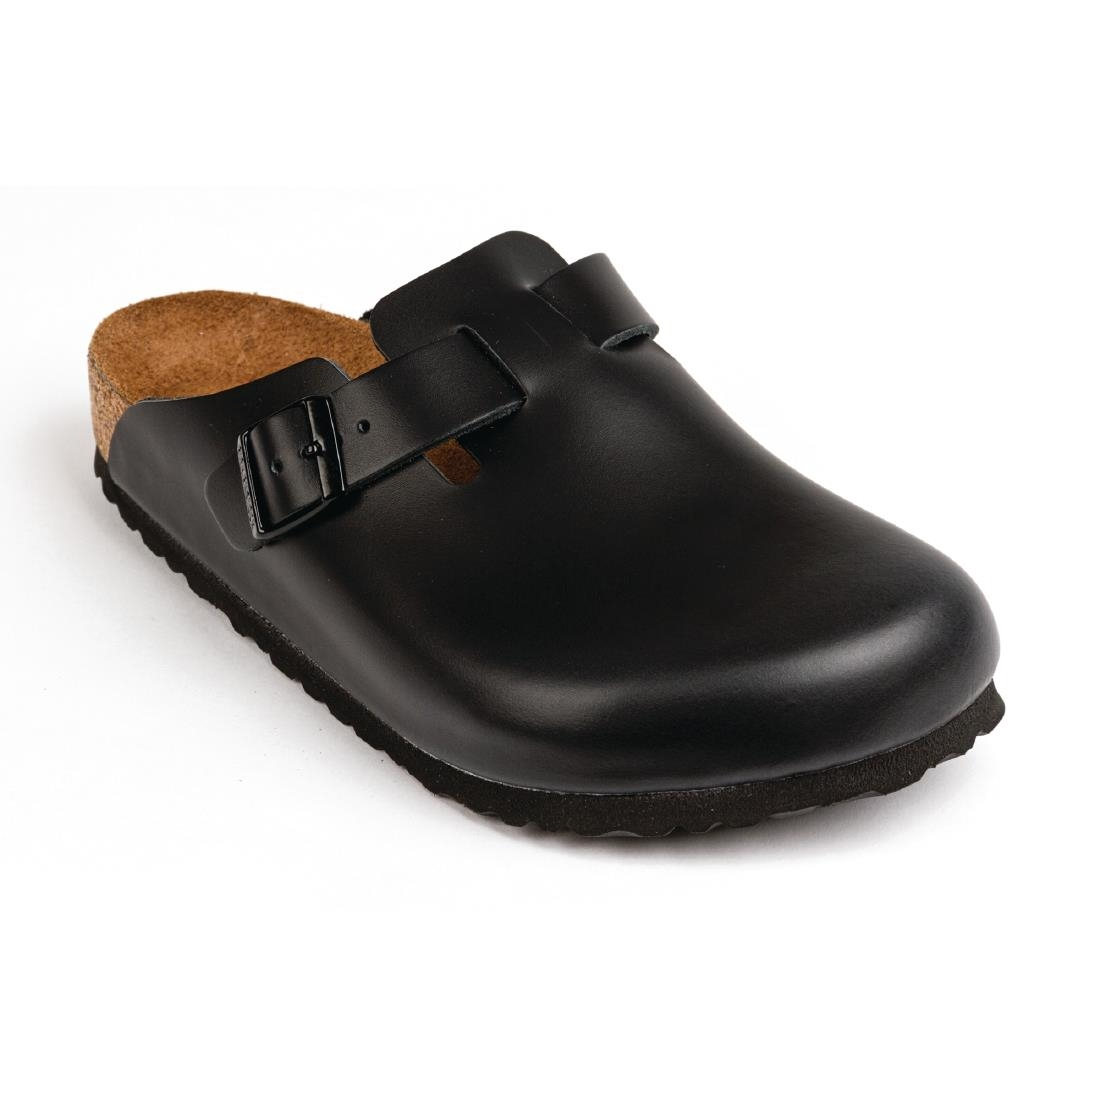 cheaper 9bc13 48042 Birkenstock Boston Clog Black